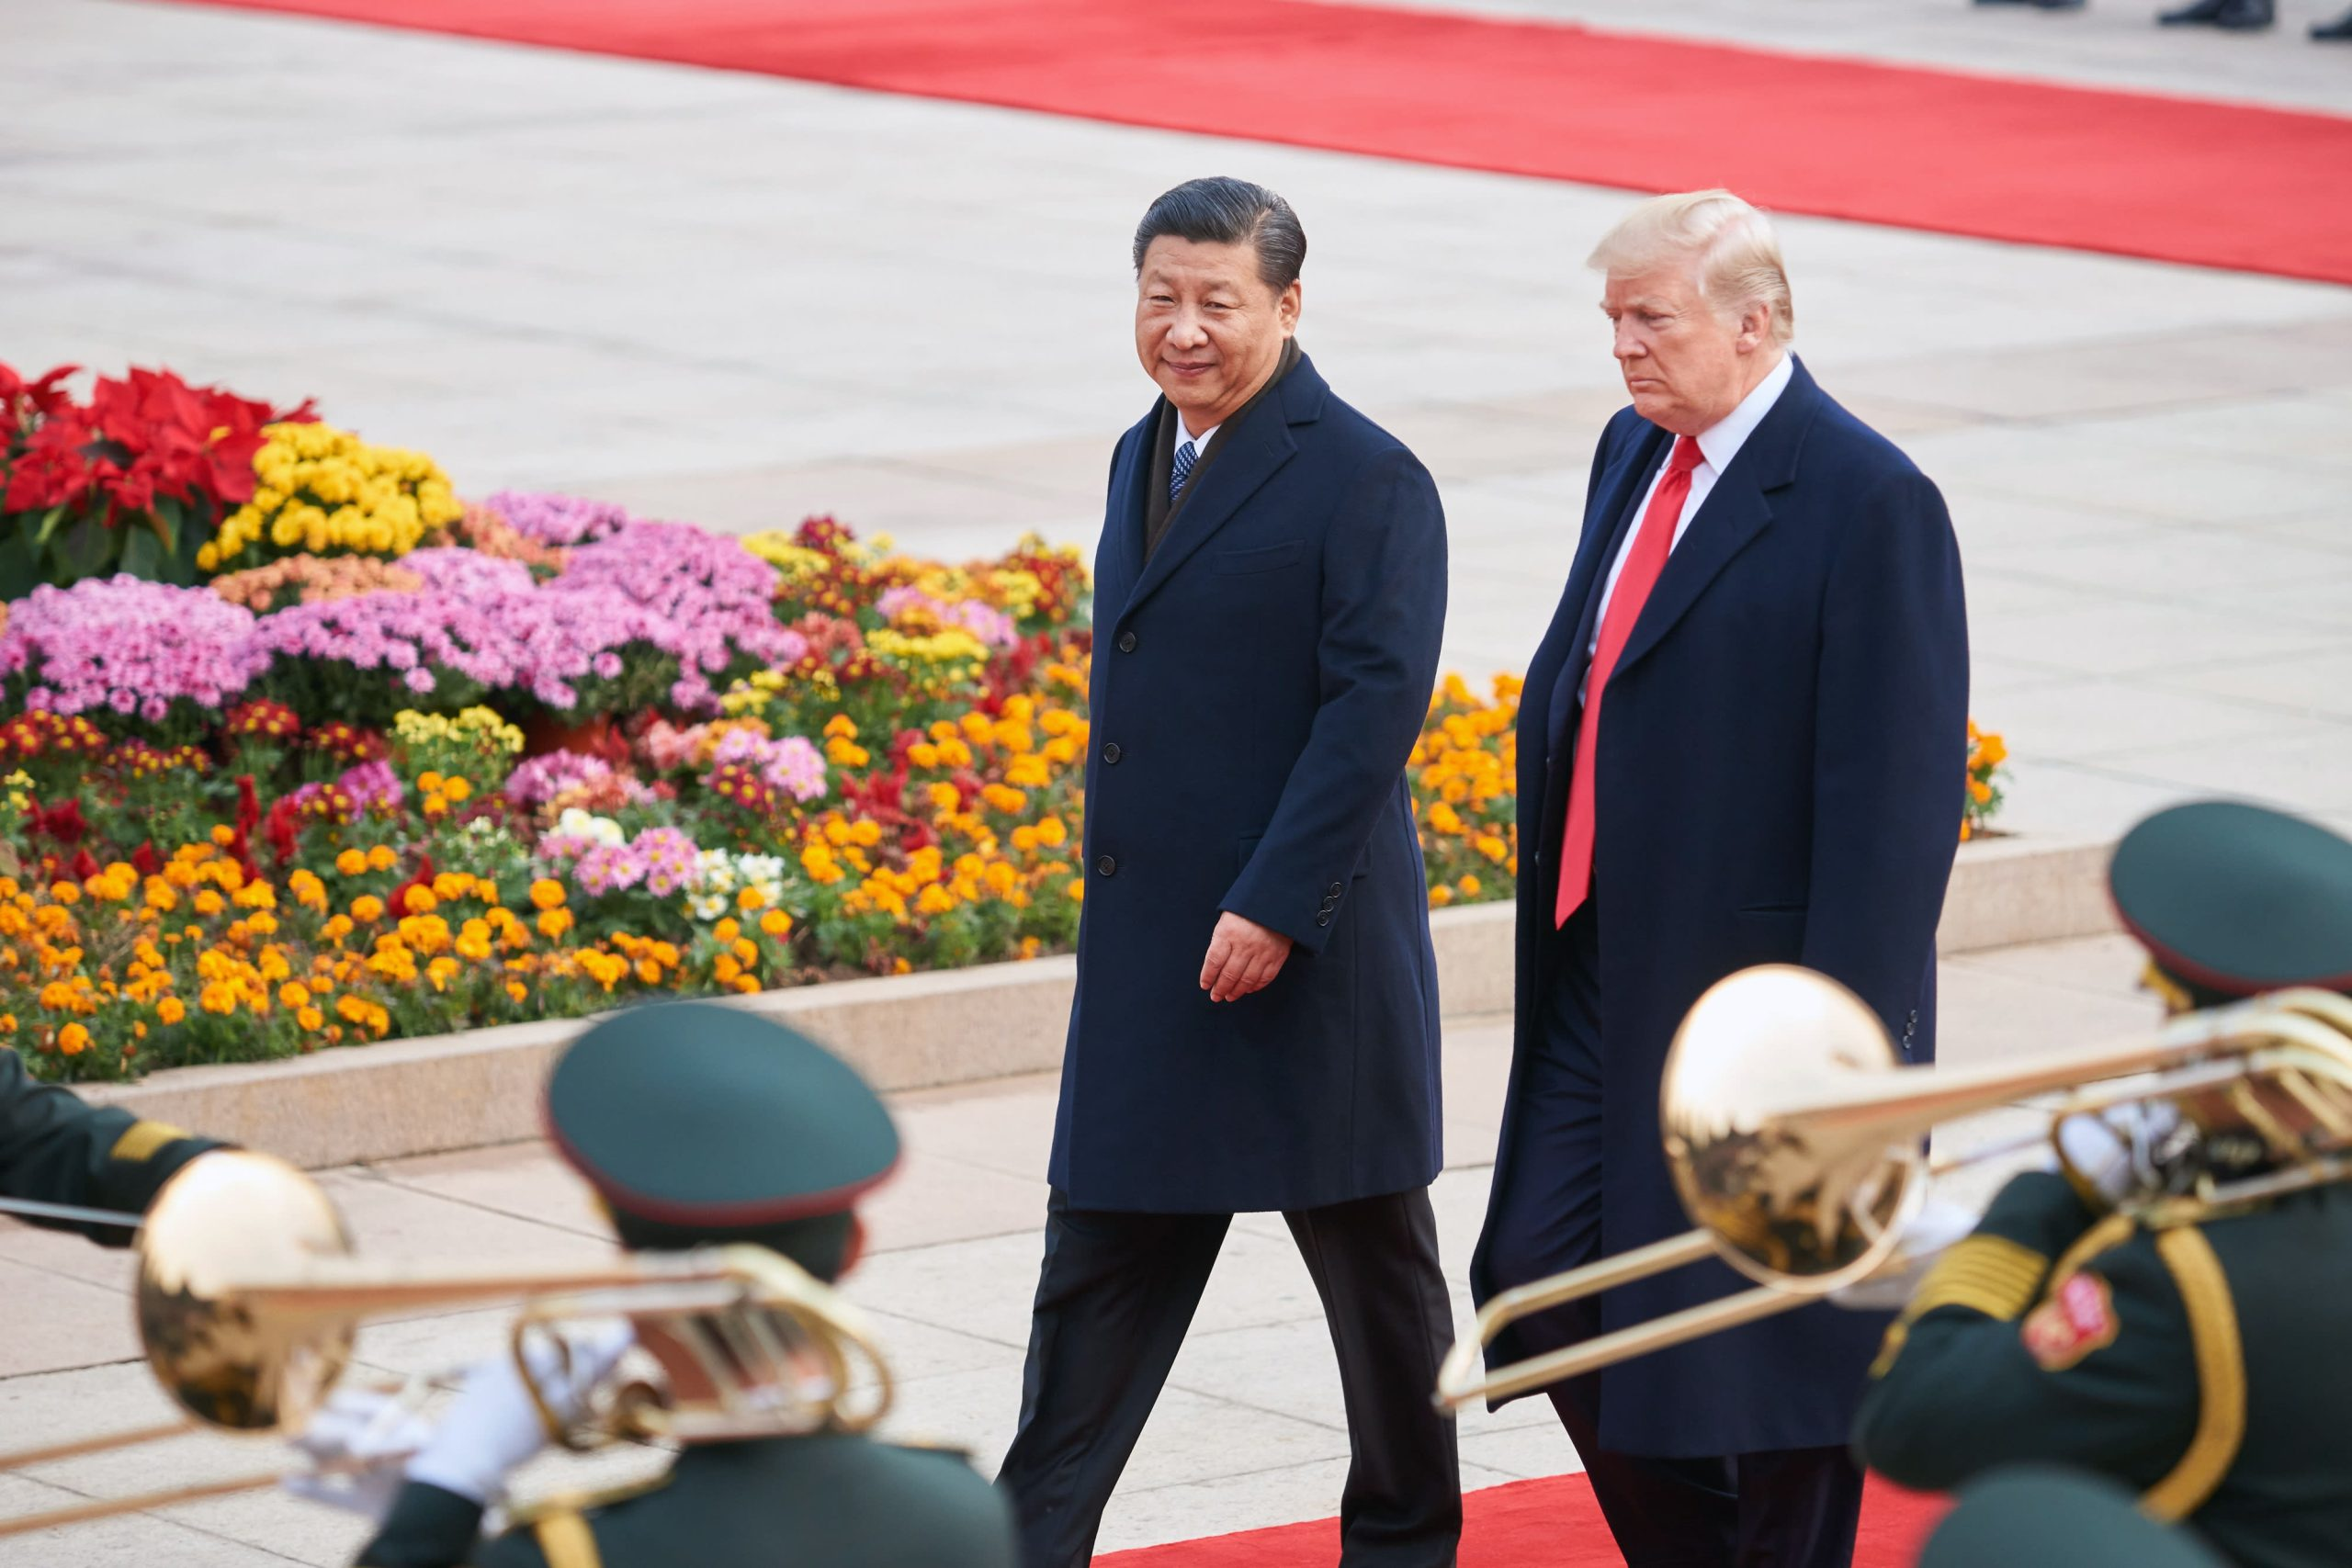 Political News: China accuses US of 'sinister intentions' after Trump signs bills supporting Hong Kong protesters – CNBC